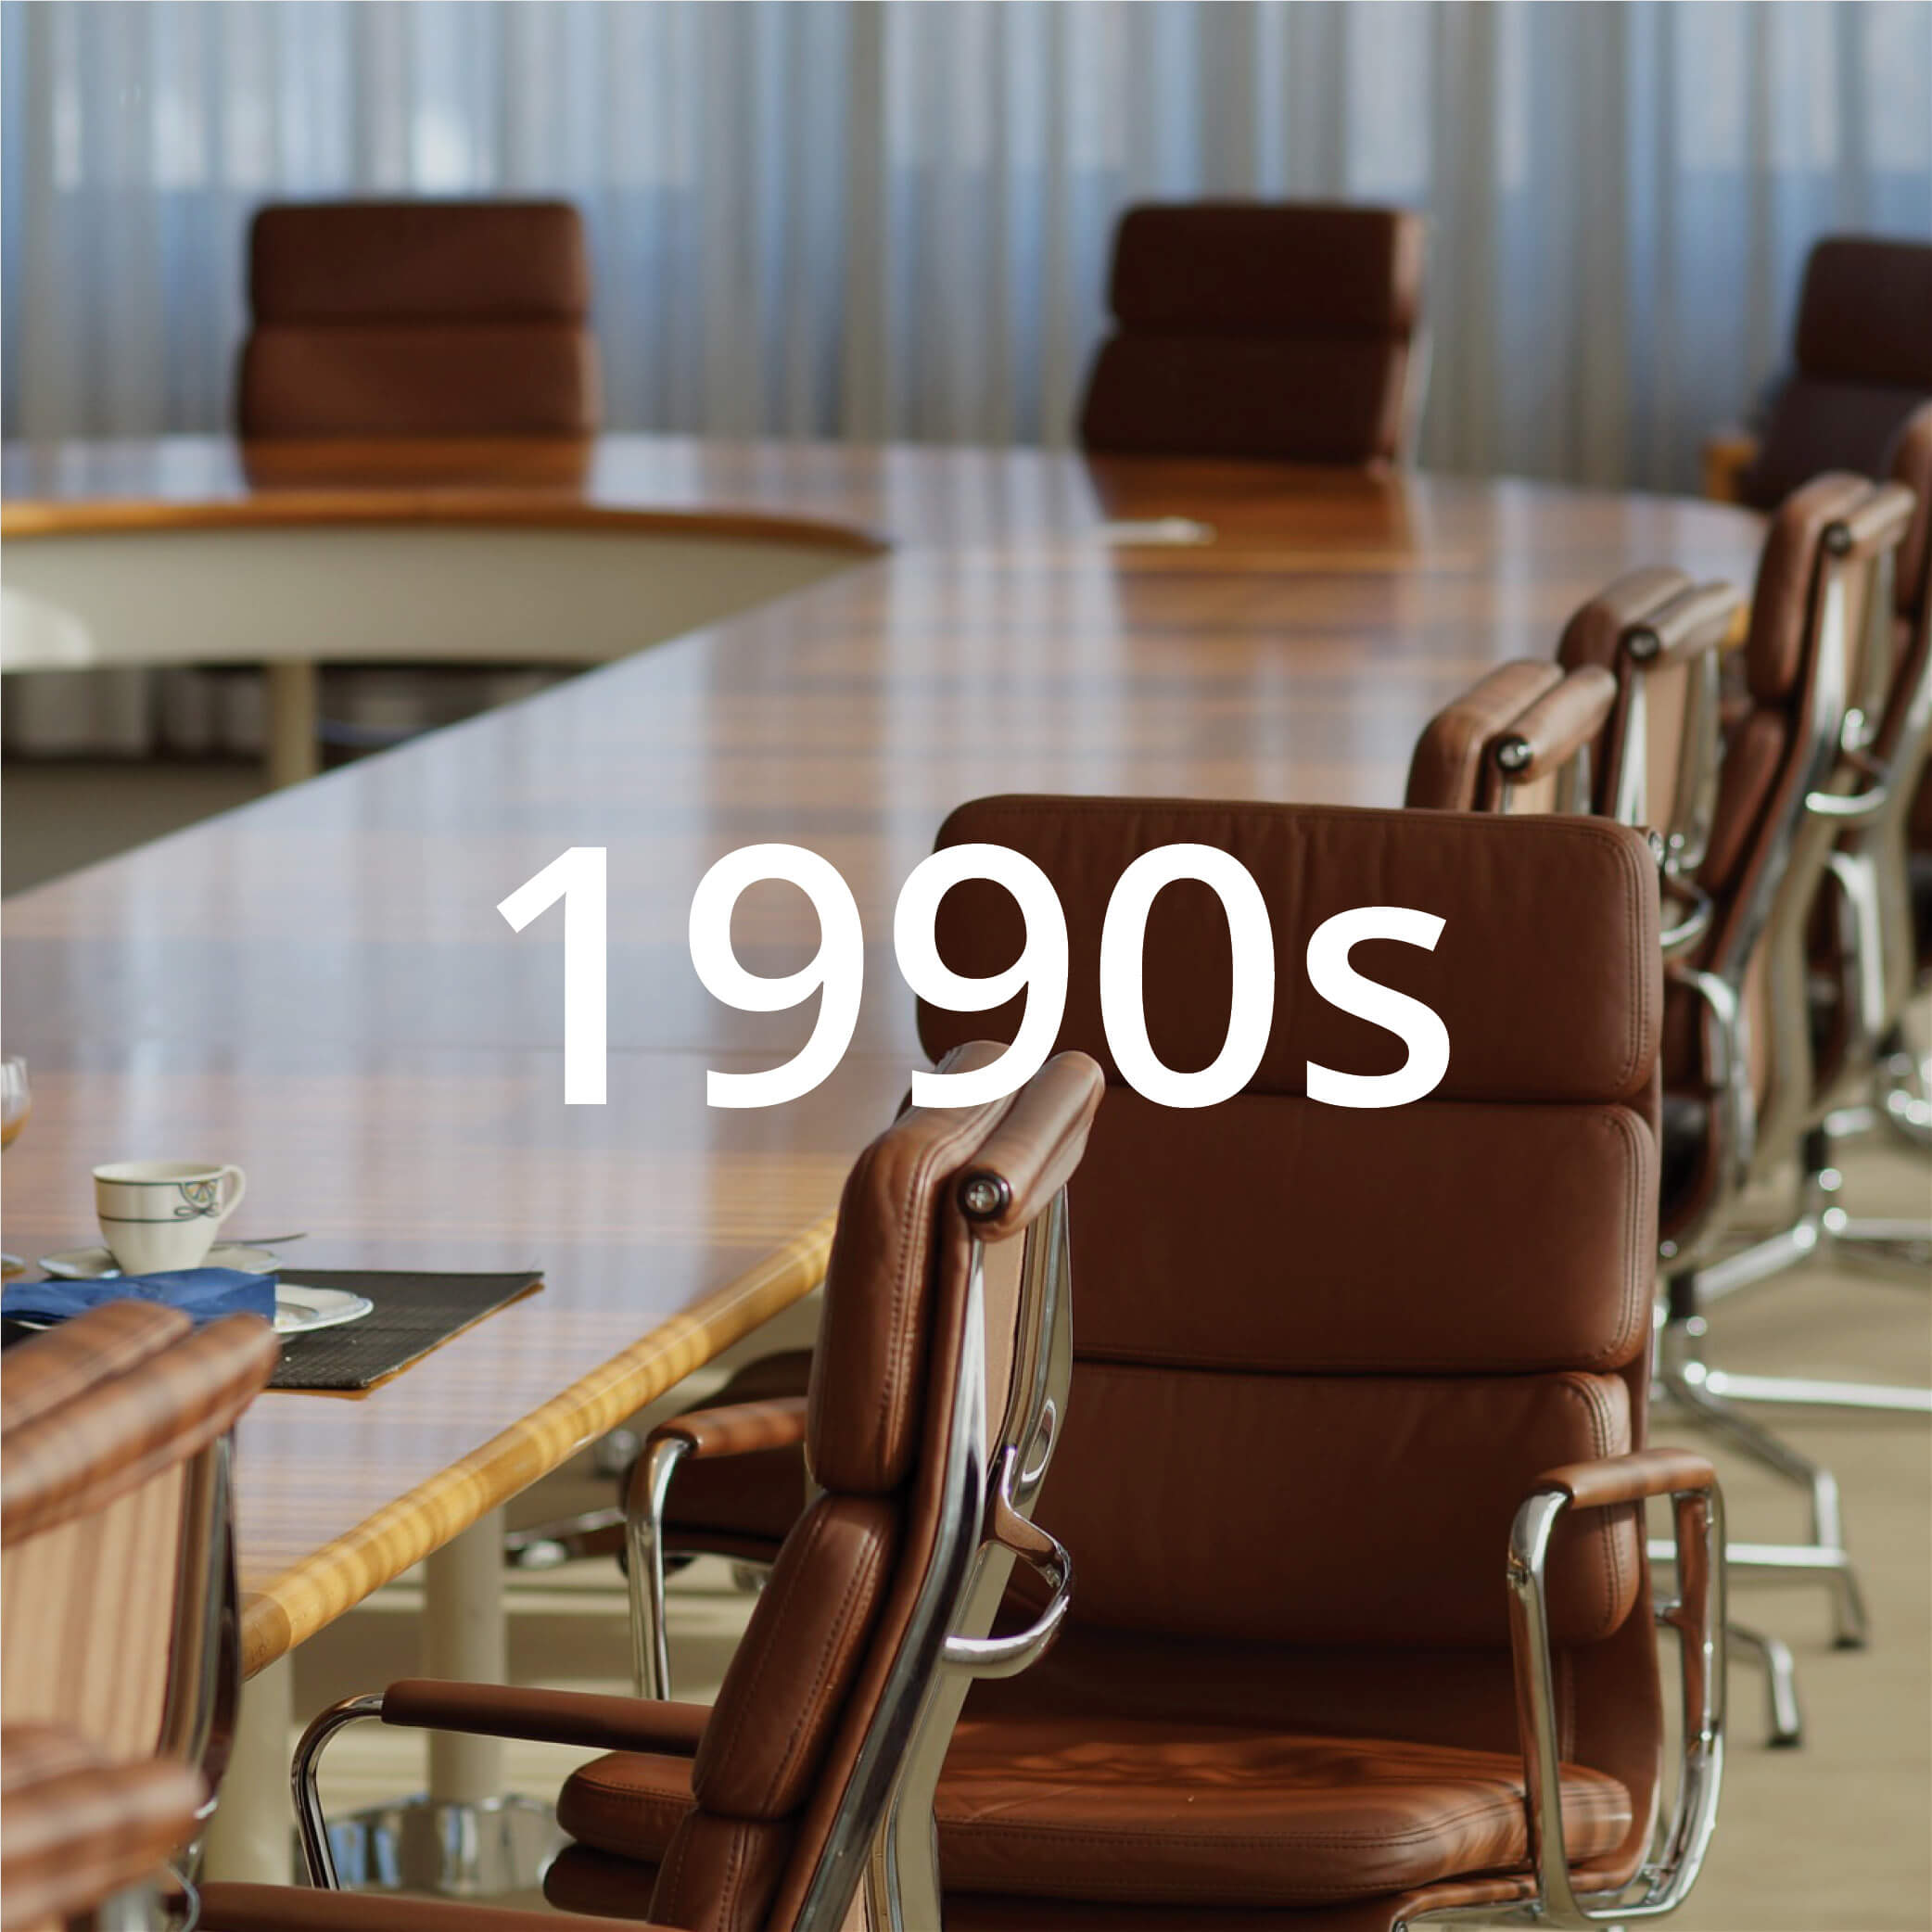 """Photo of a meeting room featuring a u-shaped table and modern brown leather chairs. Photo also features text overlay that reads """"1990s""""."""